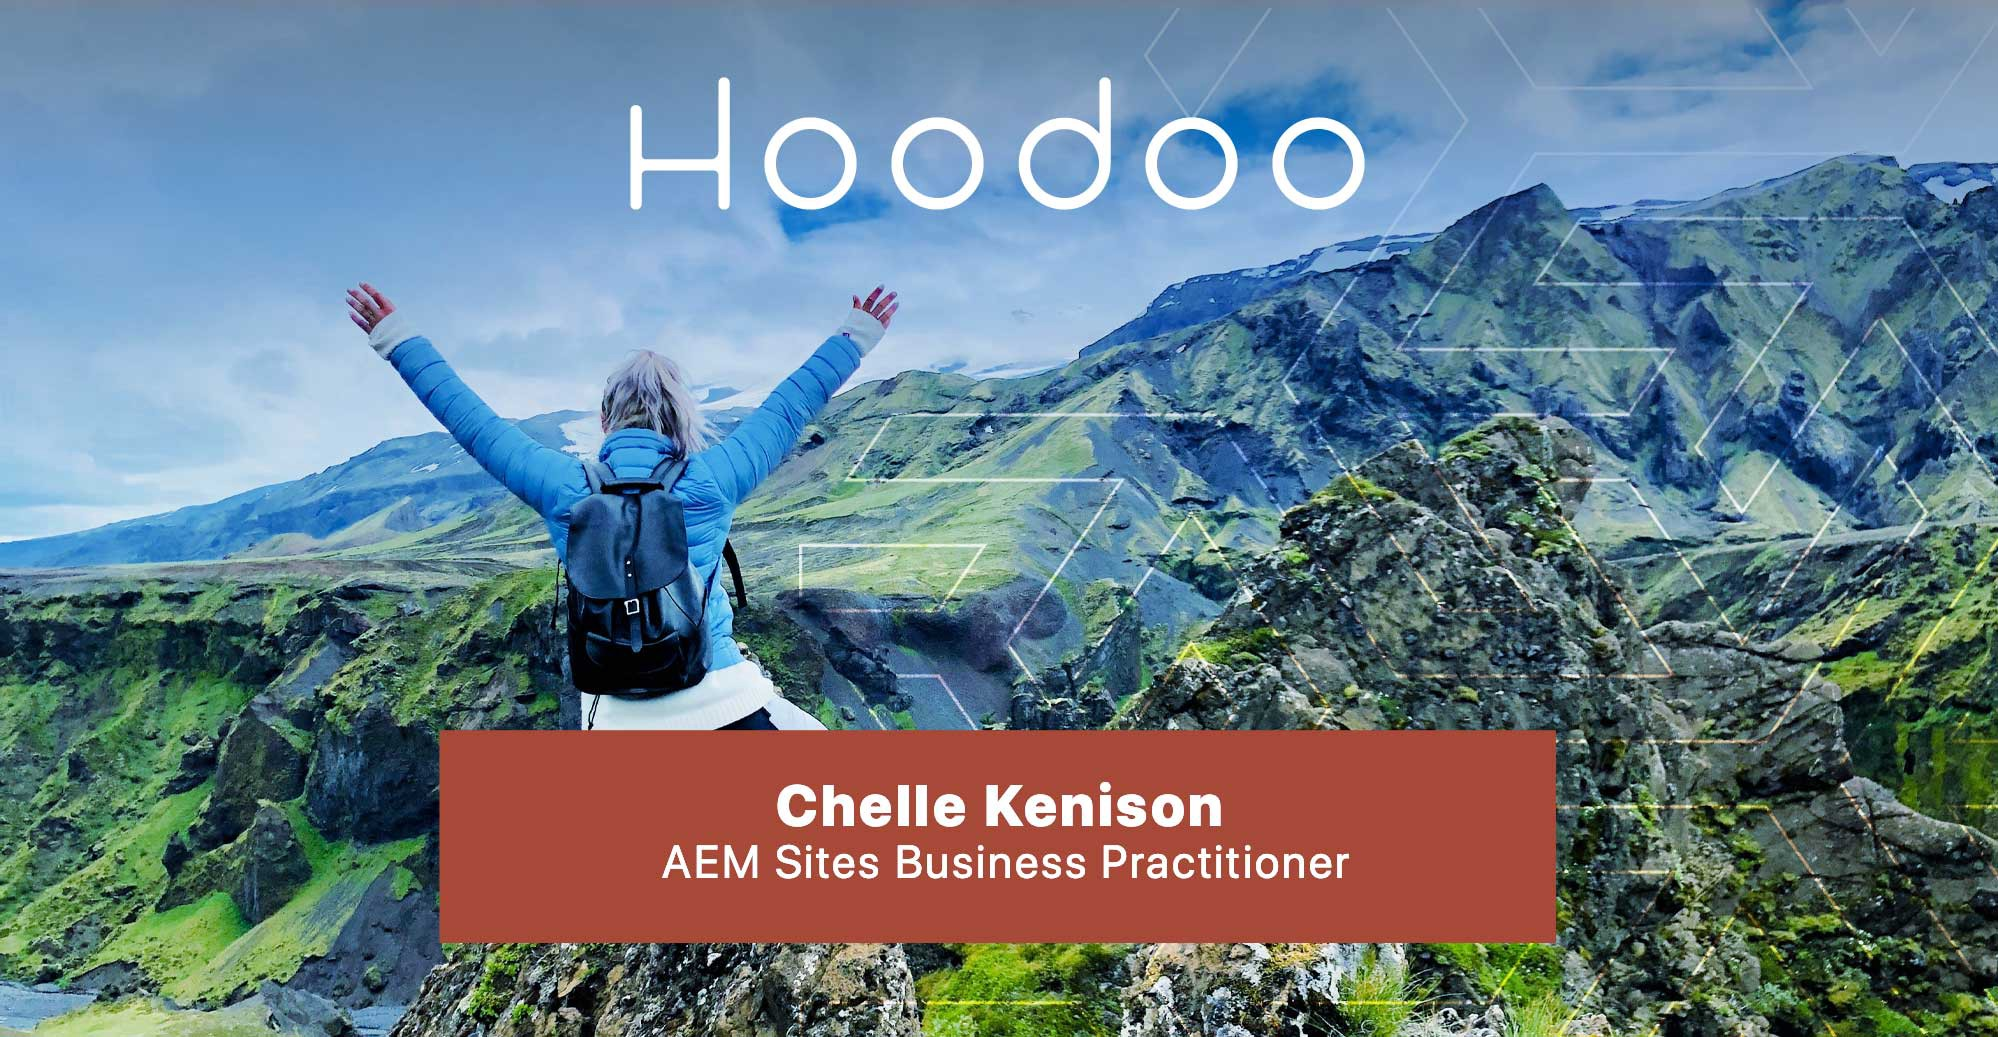 Chelle Kenison Completes AEM Sites Business Practitioner Certification